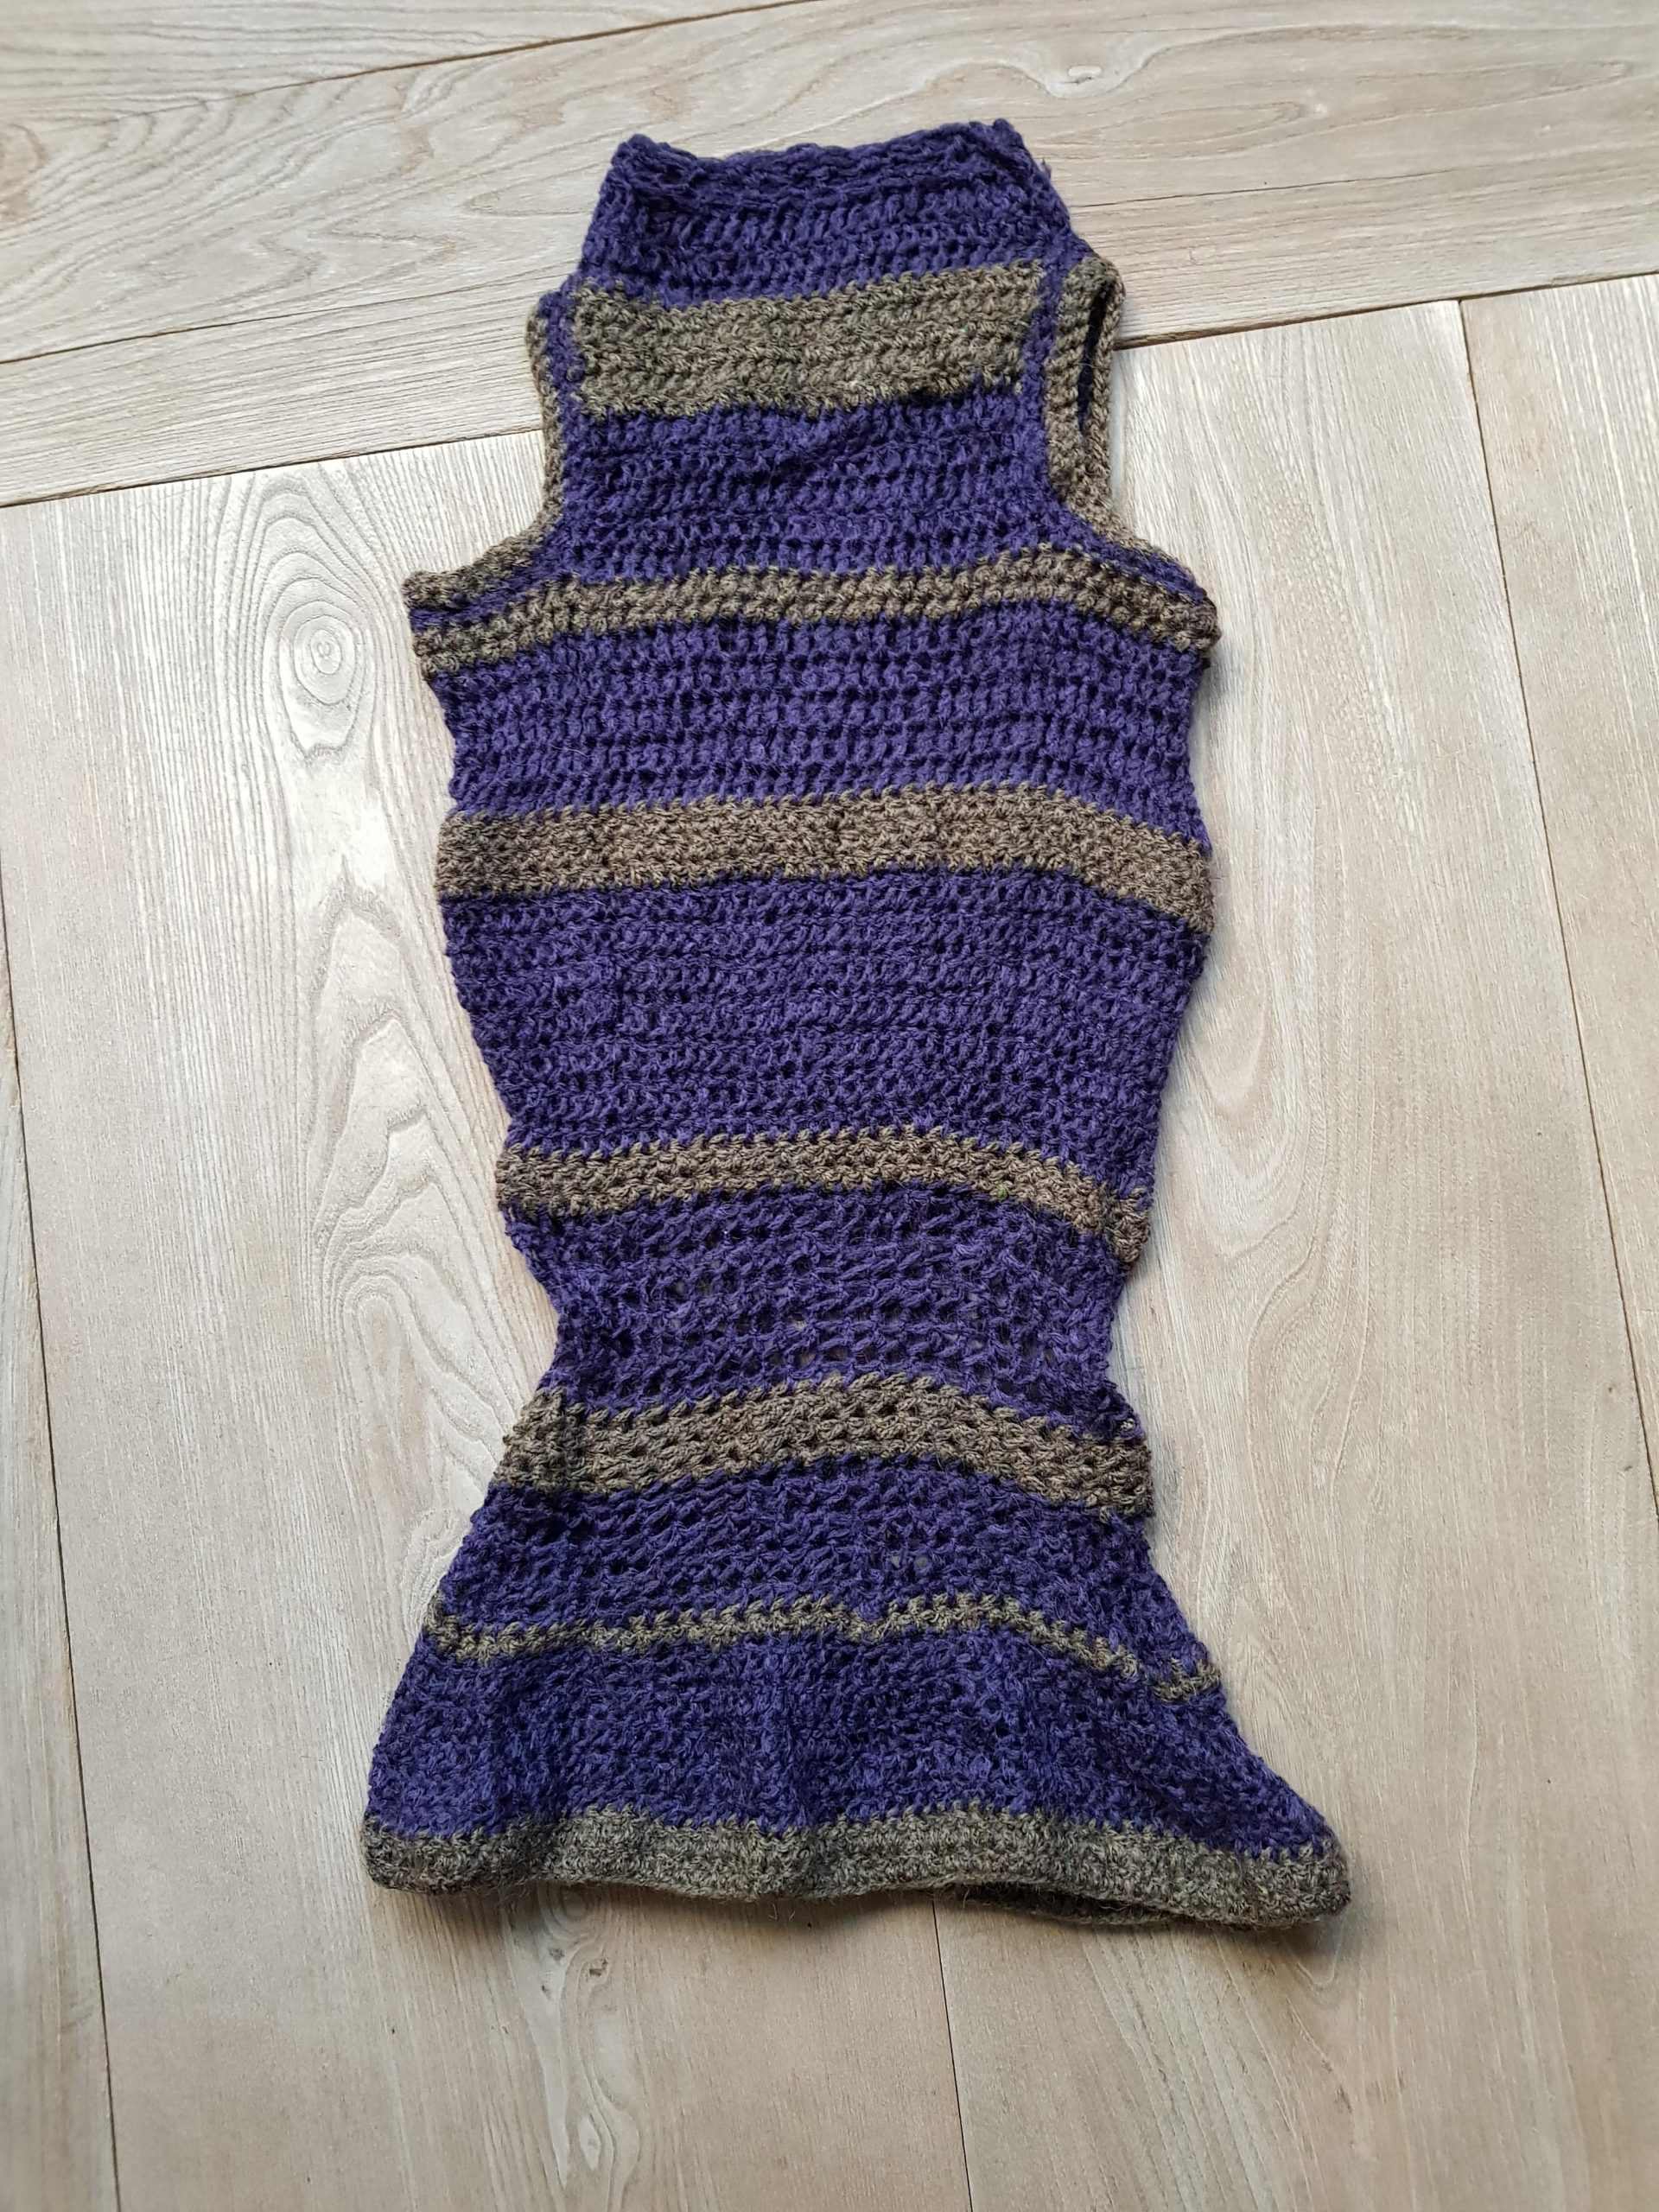 bqivc5dp8tr51 scaled - Some years ago I crocheted this slipover using left over yarn - hobbies, crafts